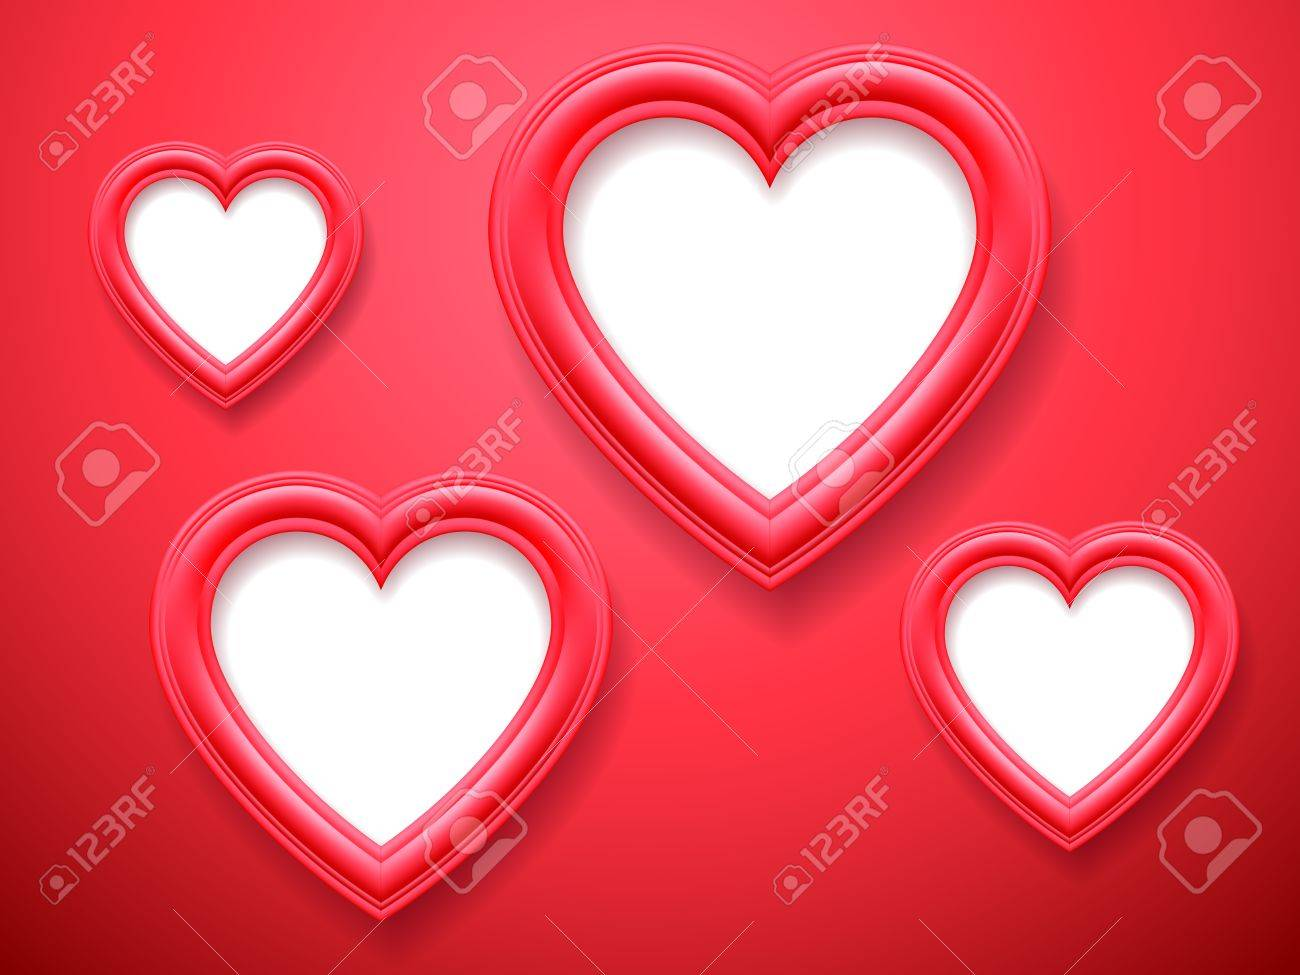 blank heart shaped picture frames on red background stock vector 35357465